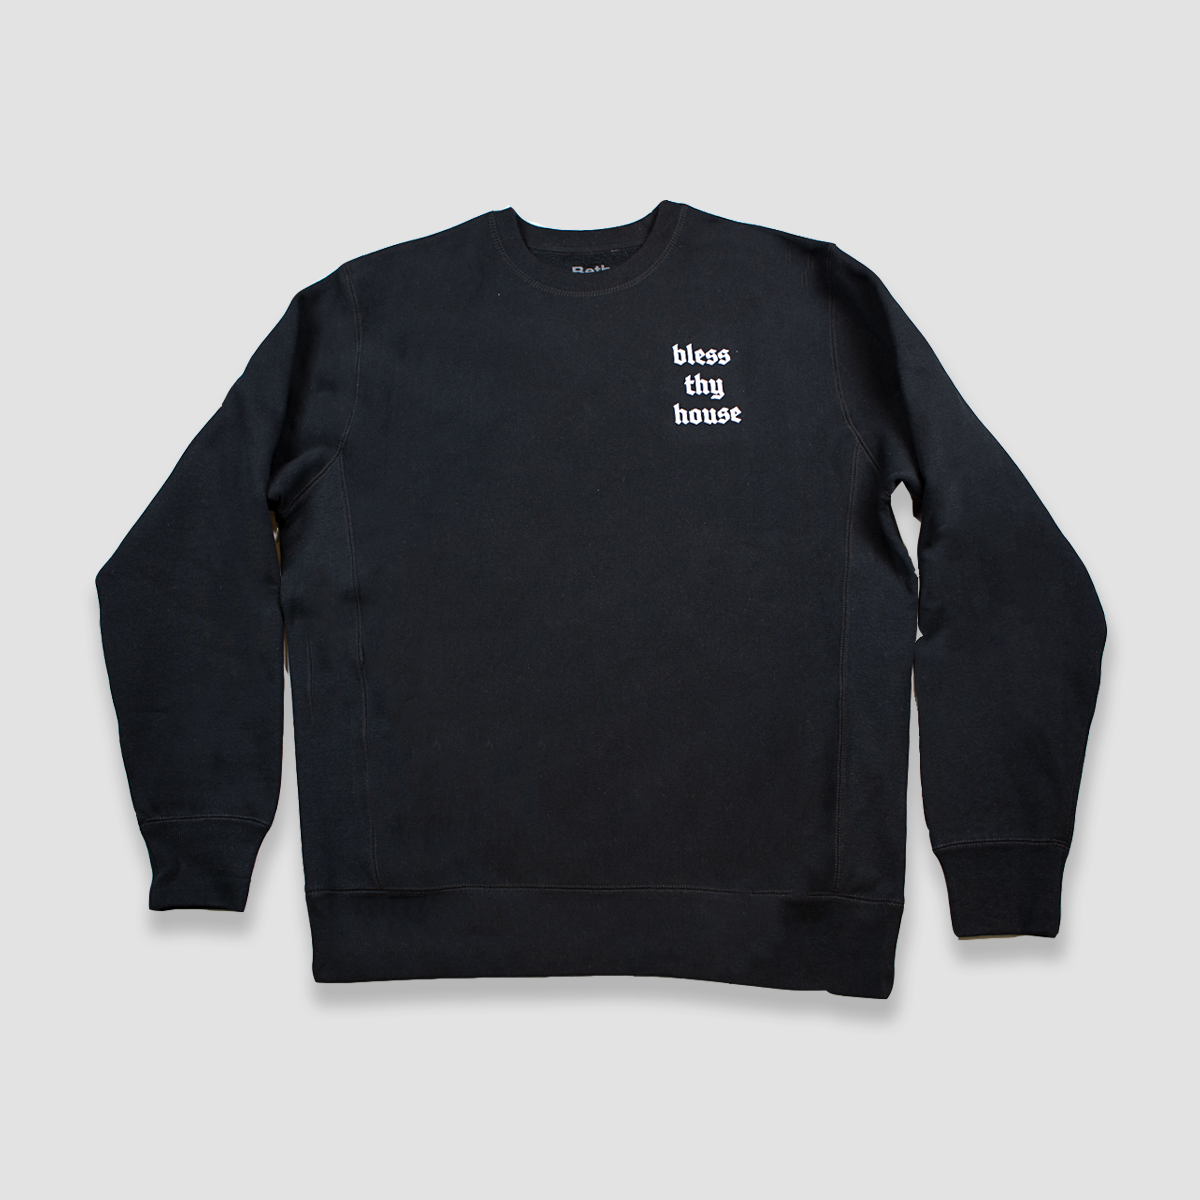 Bless Thy House Crew Neck Fleece